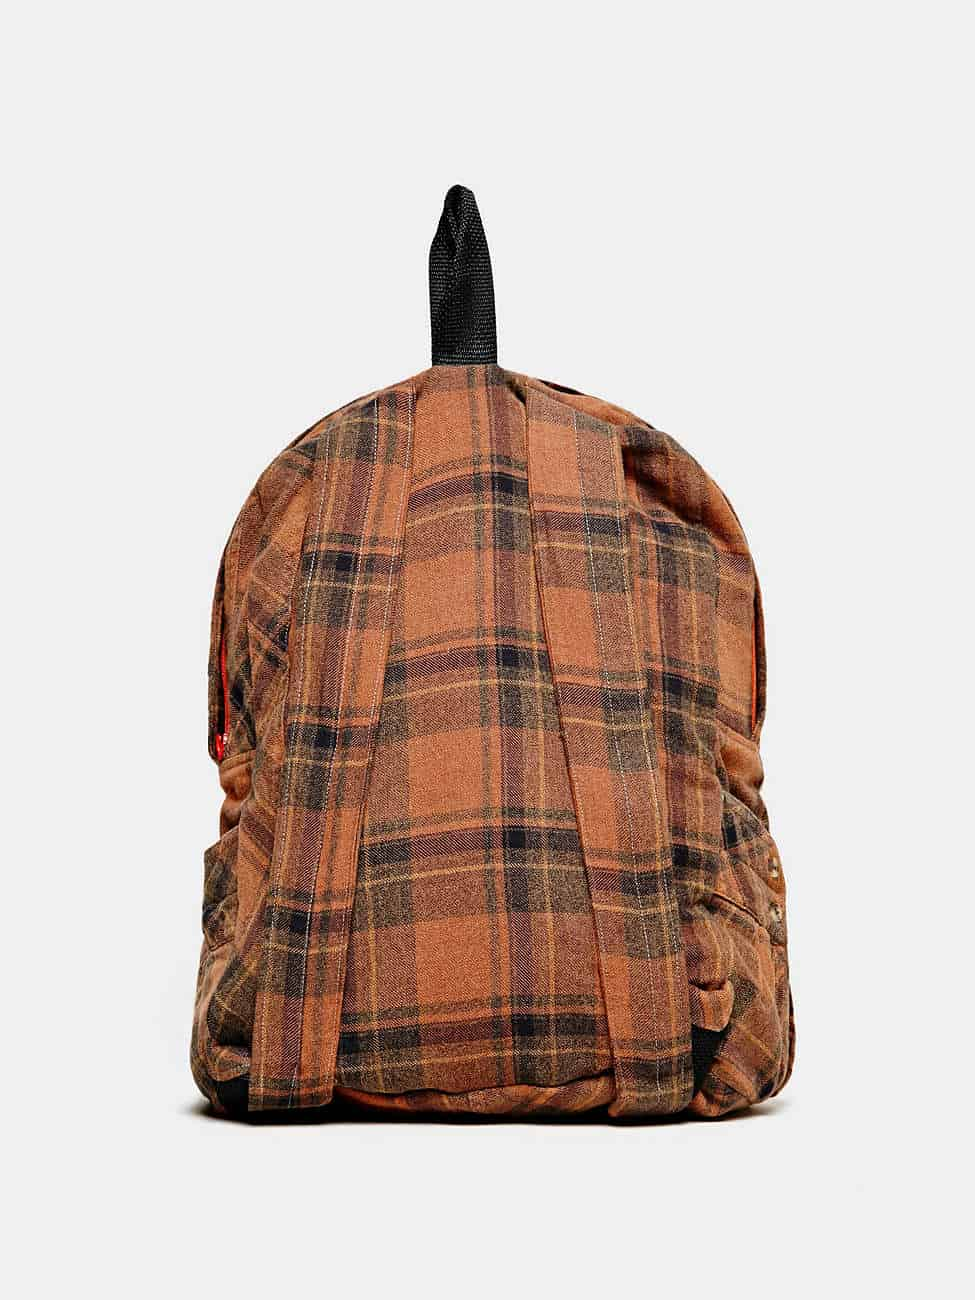 Yokishop Jet Plane Backpack Orange Plaid Pattern